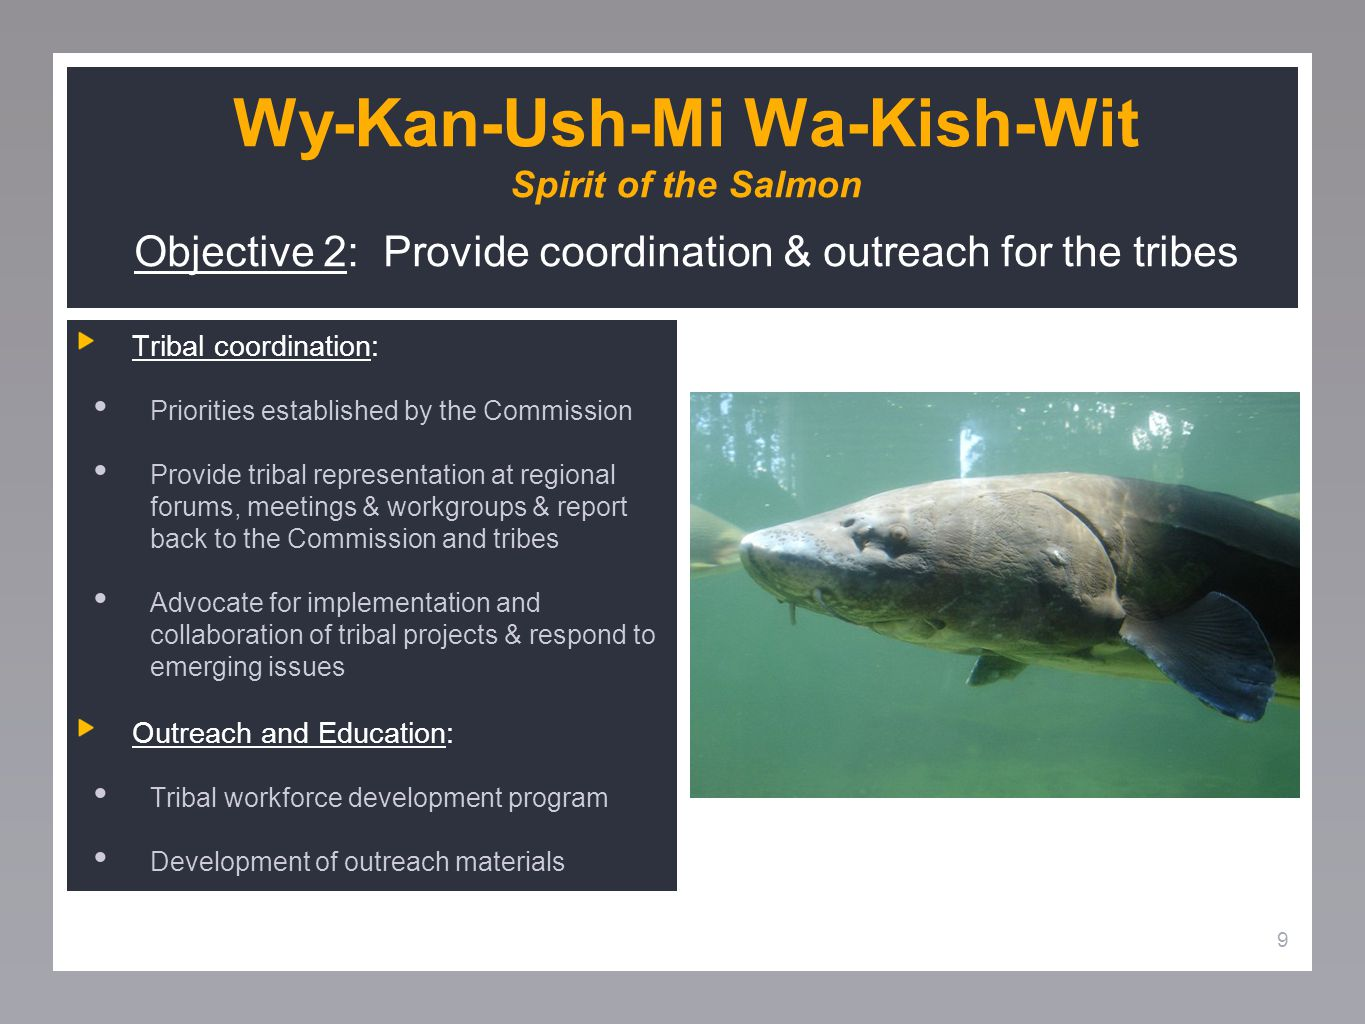 9 Wy-Kan-Ush-Mi Wa-Kish-Wit Spirit of the Salmon Objective 2: Provide coordination & outreach for the tribes Tribal coordination: Priorities established by the Commission Provide tribal representation at regional forums, meetings & workgroups & report back to the Commission and tribes Advocate for implementation and collaboration of tribal projects & respond to emerging issues Outreach and Education: Tribal workforce development program Development of outreach materials